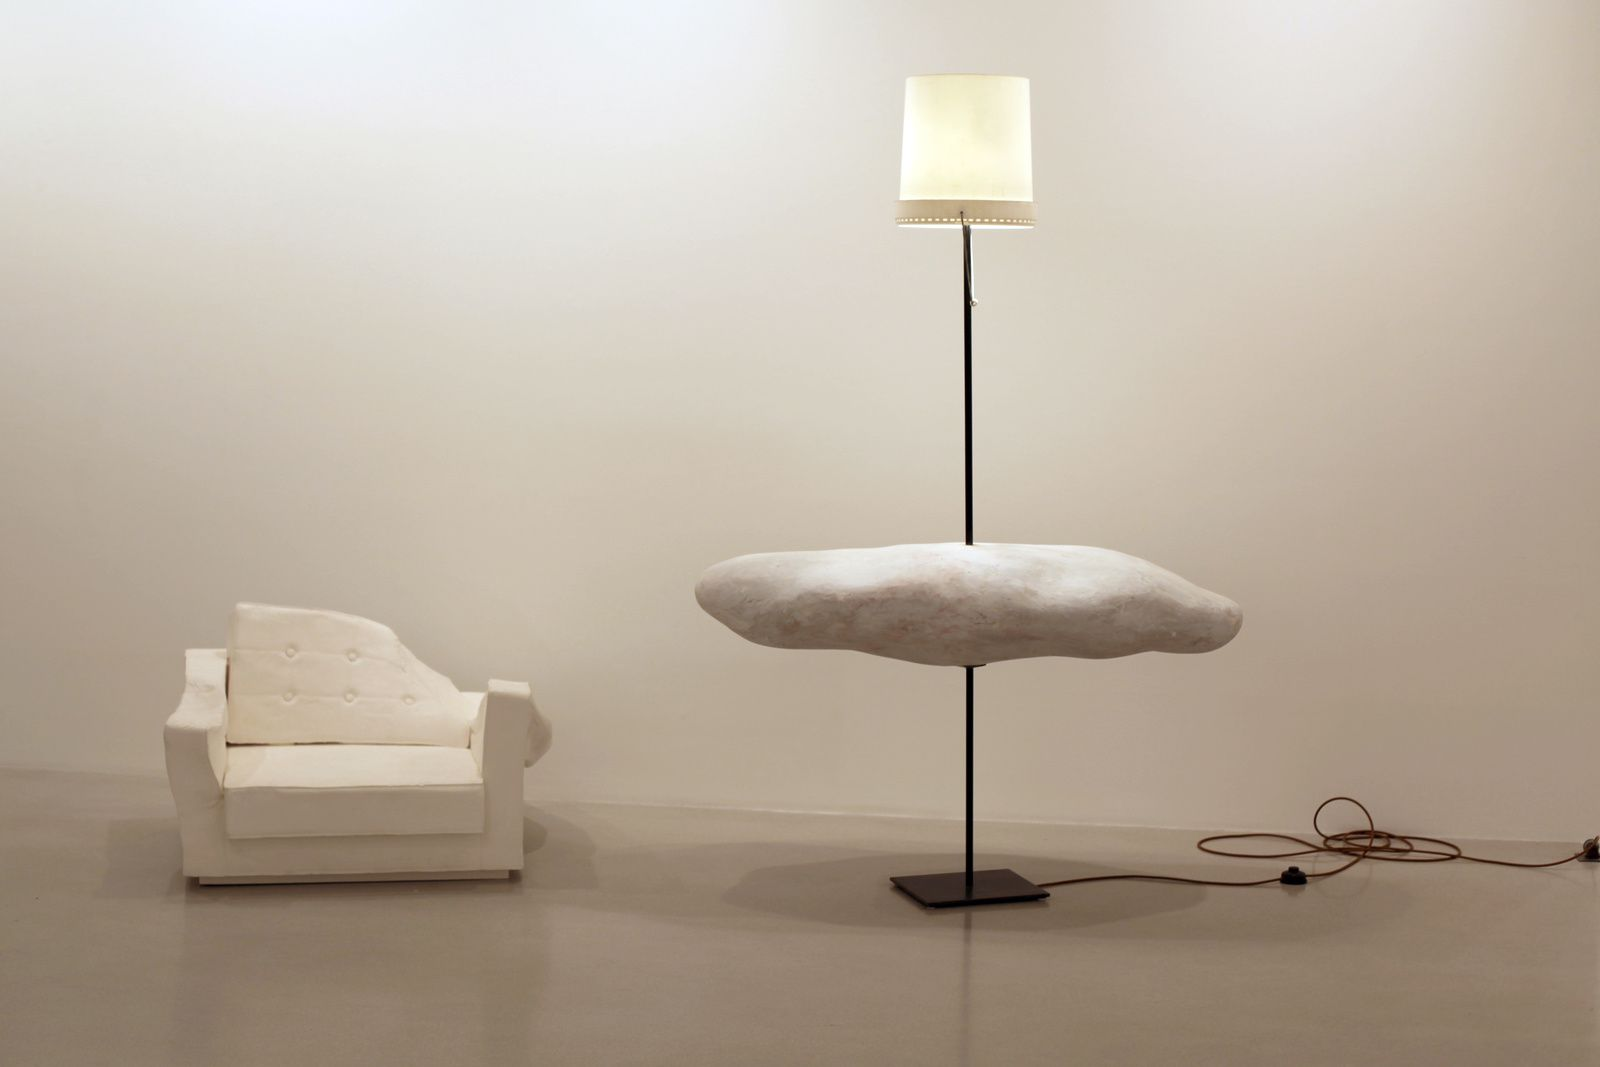 """Triple seat (Fauteuil white)"" et ""Afterglow (Lamp), 2015 de Erwin Wurm - Courtesy Galerie Thaddaeus Ropac © Photo Éric Simon"